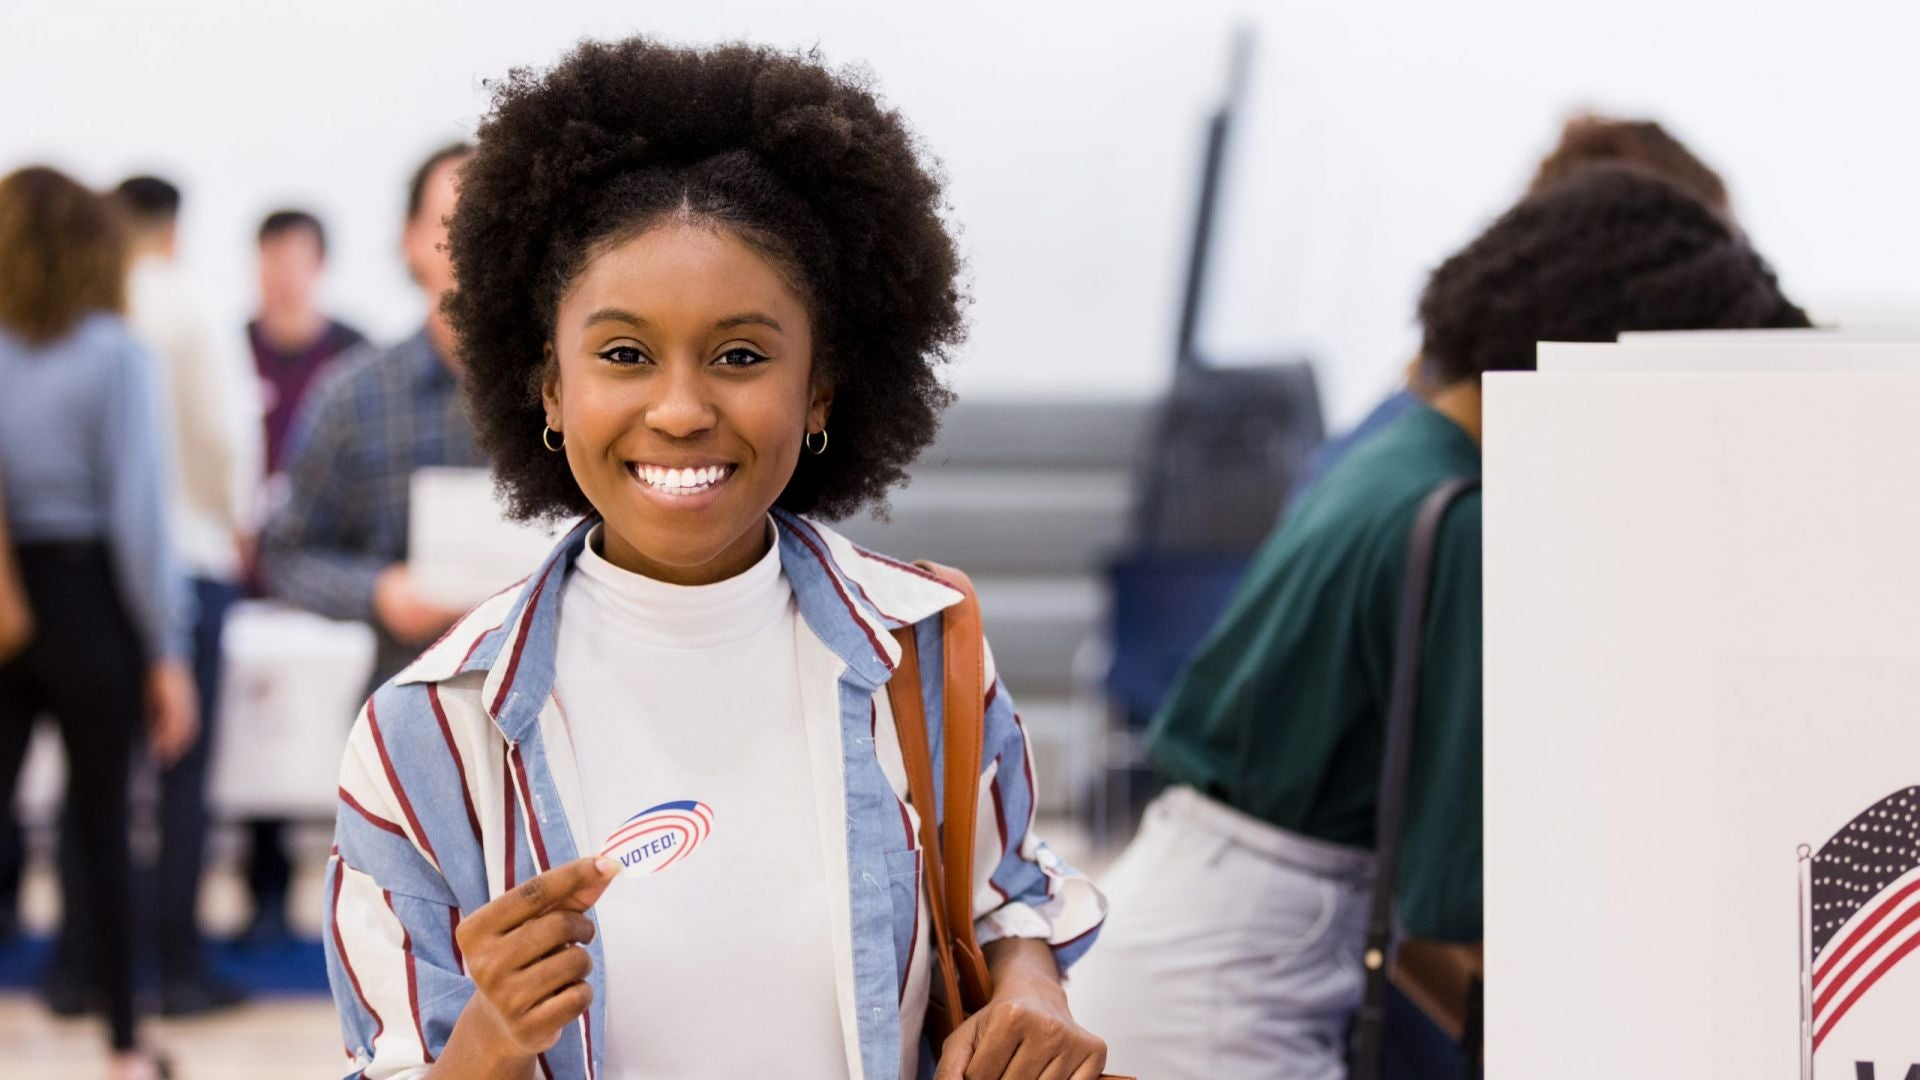 Black Women Voters Are Committed To Moving The Country To Higher Heights